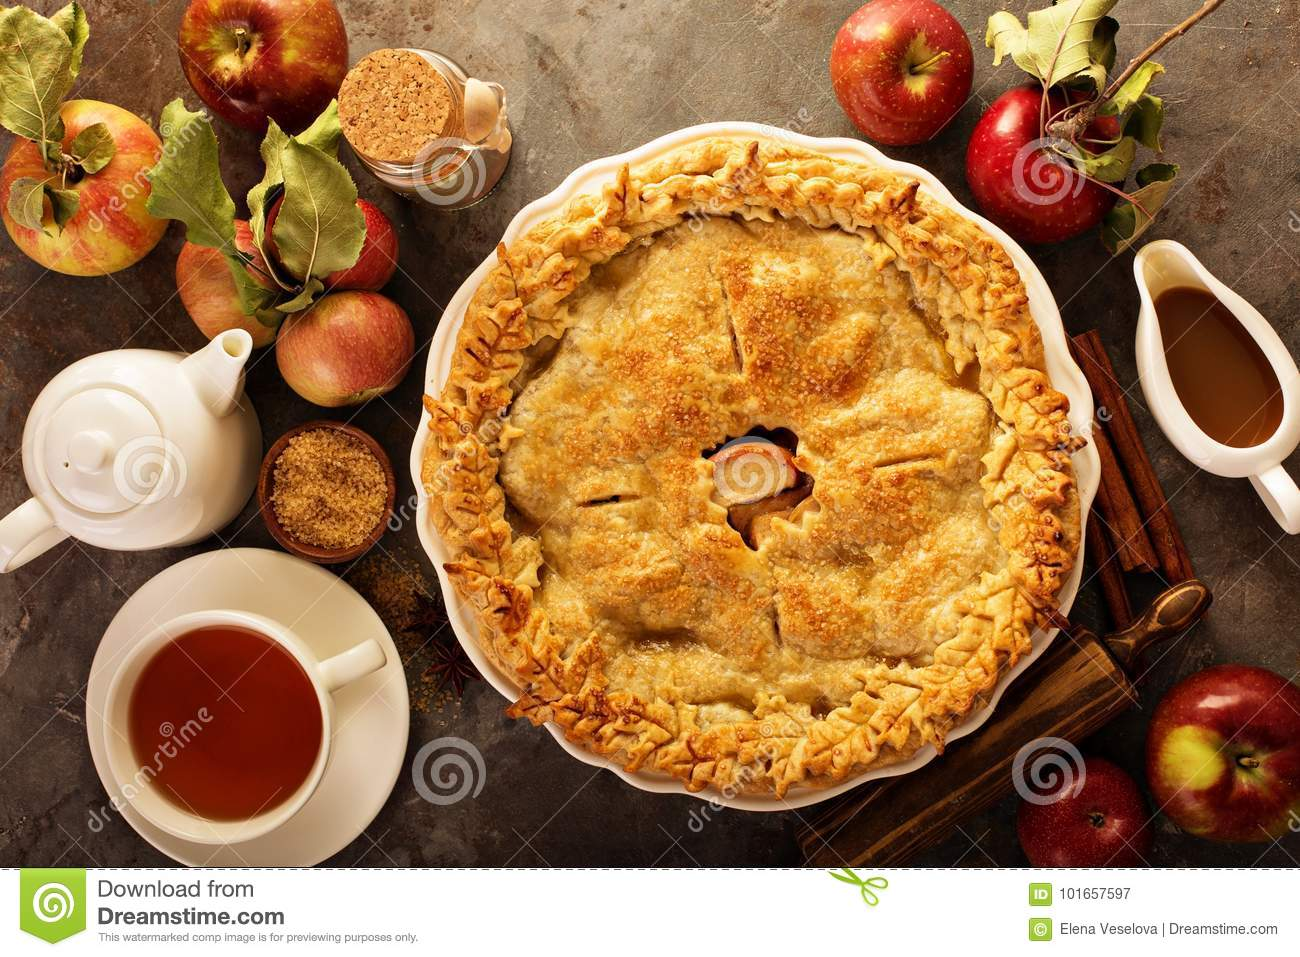 Apple pie decorated with fall leaves